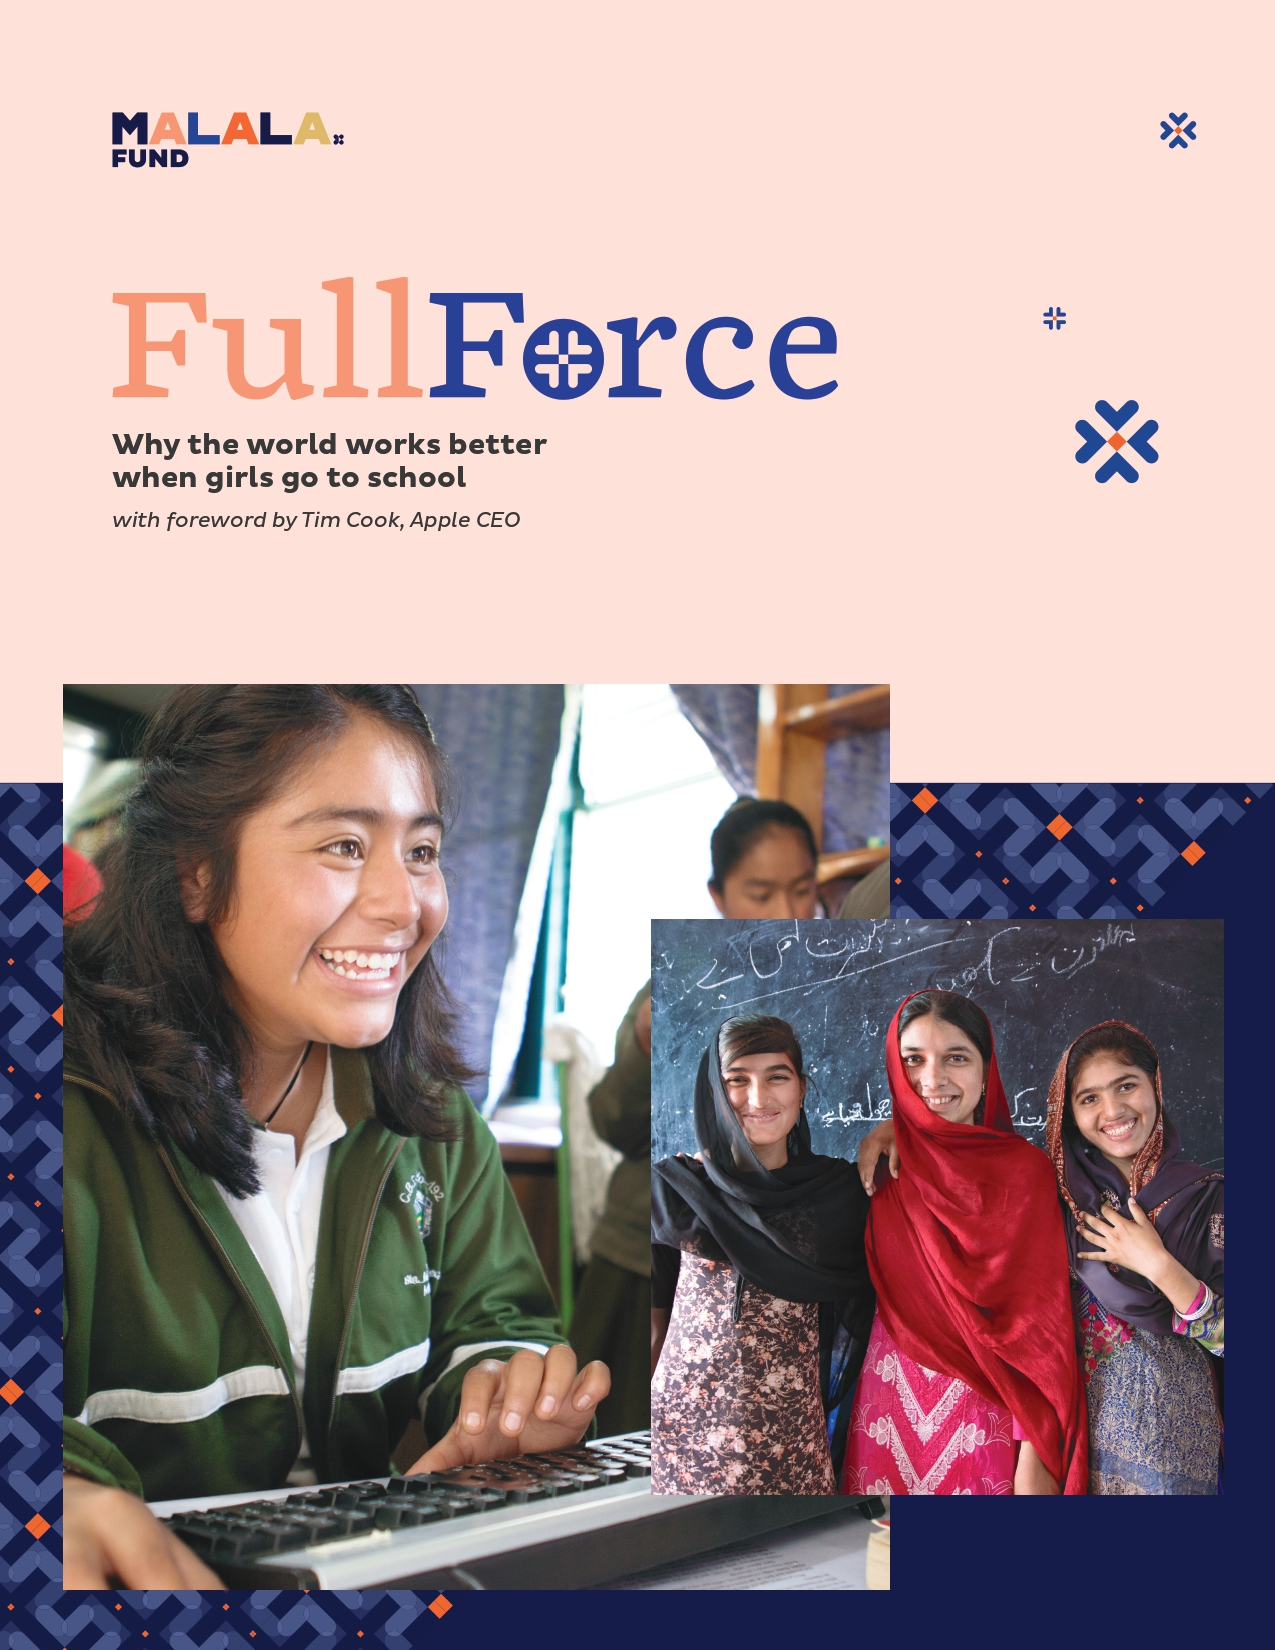 Full Force: Why the world works better when girls go to school